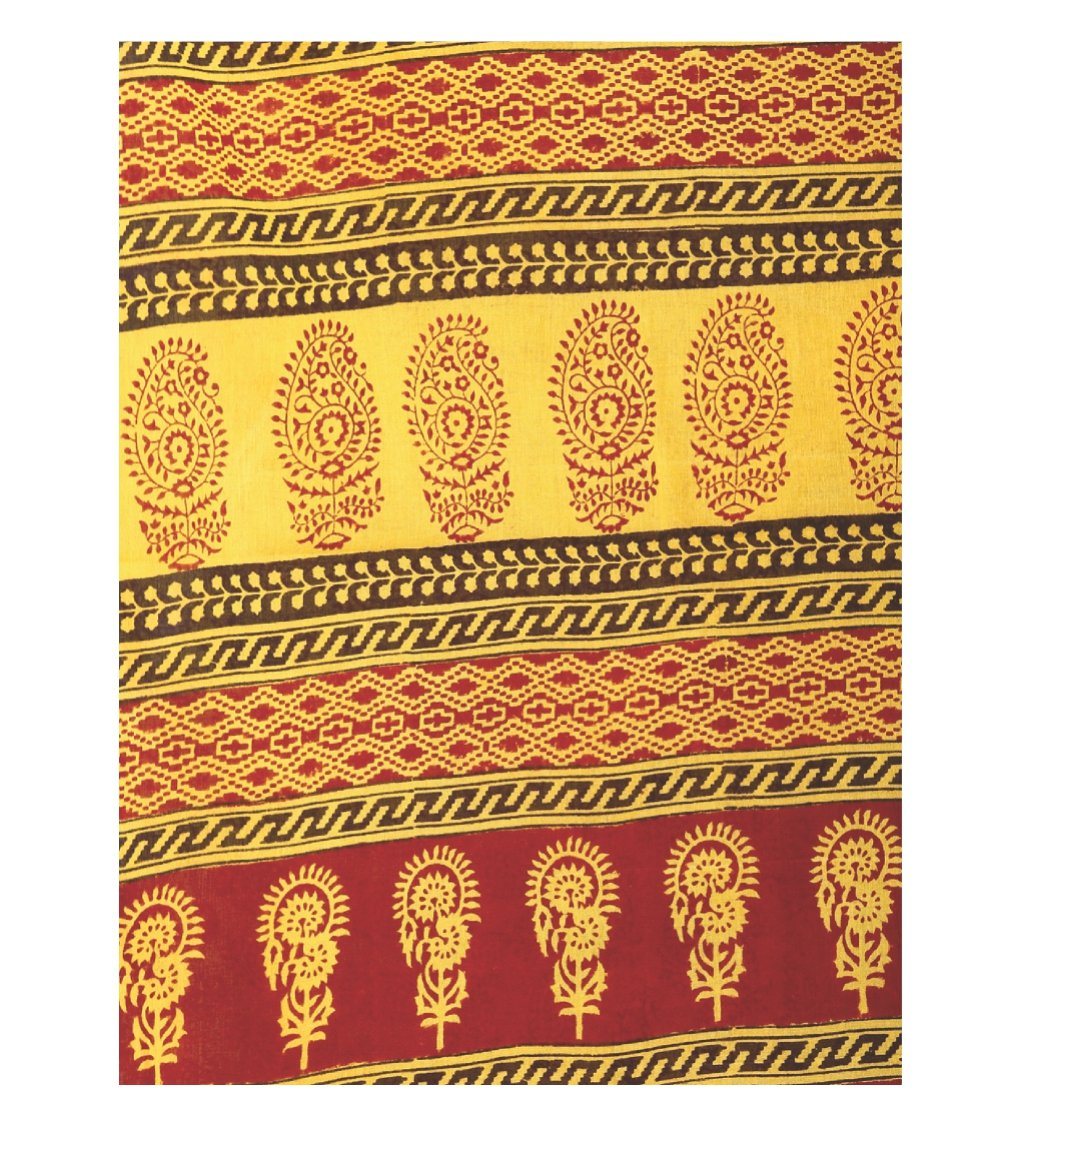 Yellow Cotton Hand Block Bagh Print Handcrafted Saree-Saree-Kalakari India-ZIBASA0037-Bagh, Cotton, Geographical Indication, Hand Blocks, Hand Crafted, Heritage Prints, Natural Dyes, Sarees, Sustainable Fabrics-[Linen,Ethnic,wear,Fashionista,Handloom,Handicraft,Indigo,blockprint,block,print,Cotton,Chanderi,Blue, latest,classy,party,bollywood,trendy,summer,style,traditional,formal,elegant,unique,style,hand,block,print, dabu,booti,gift,present,glamorous,affordable,collectible,Sari,Saree,printed, h